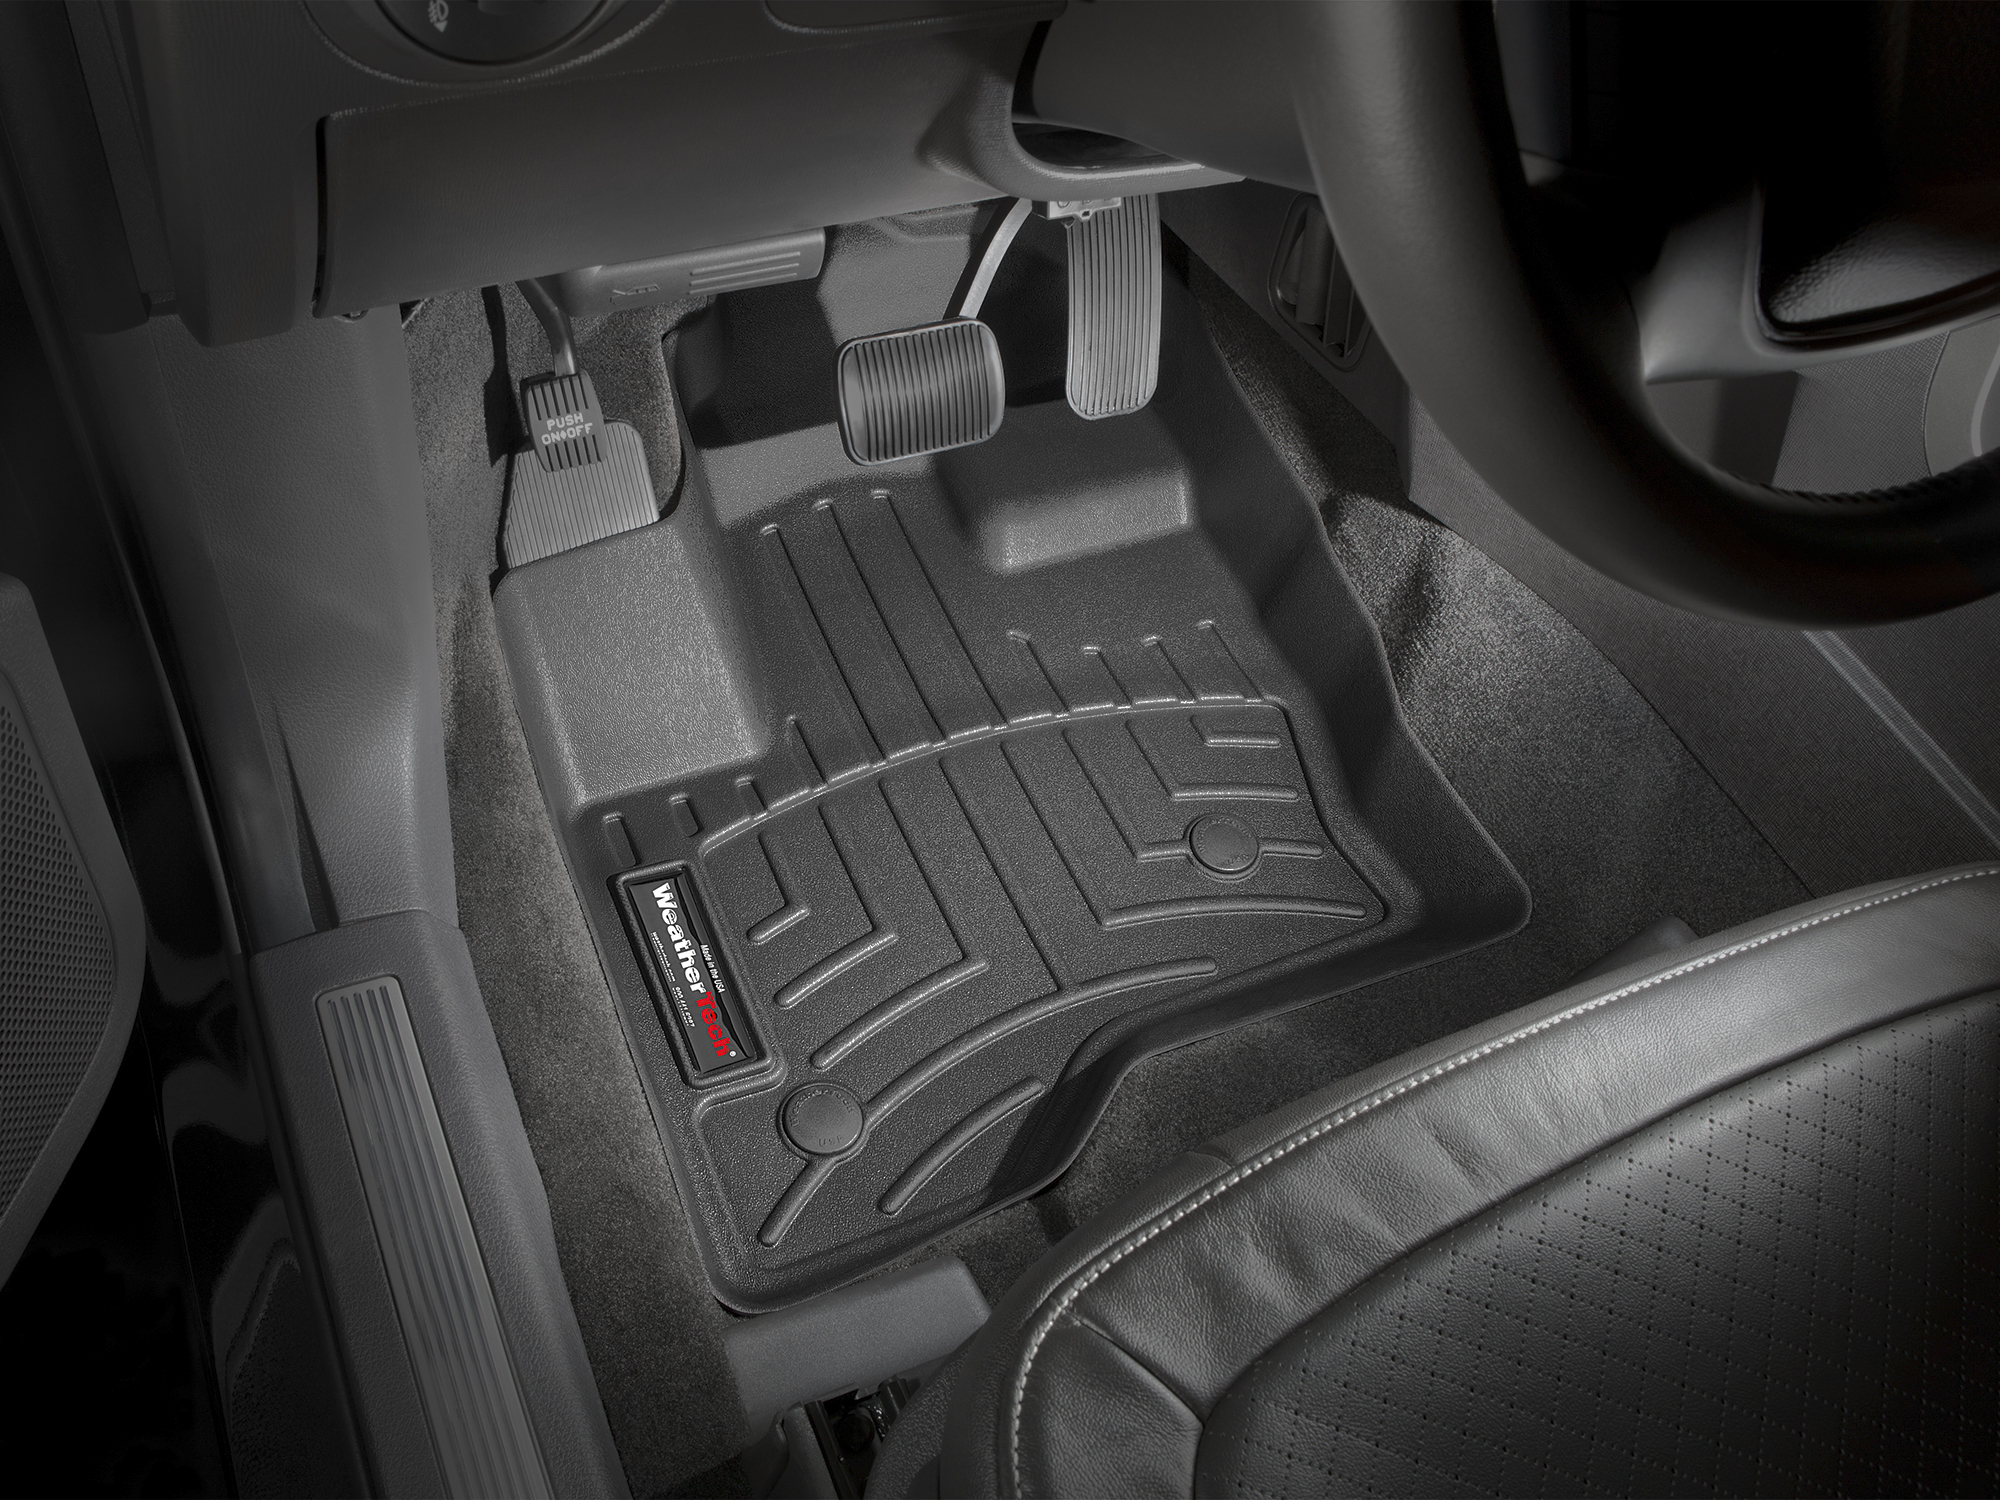 2016 Lincoln MKT | AVM HD - Tapetes Trim to Fit semiuniversales y de ...